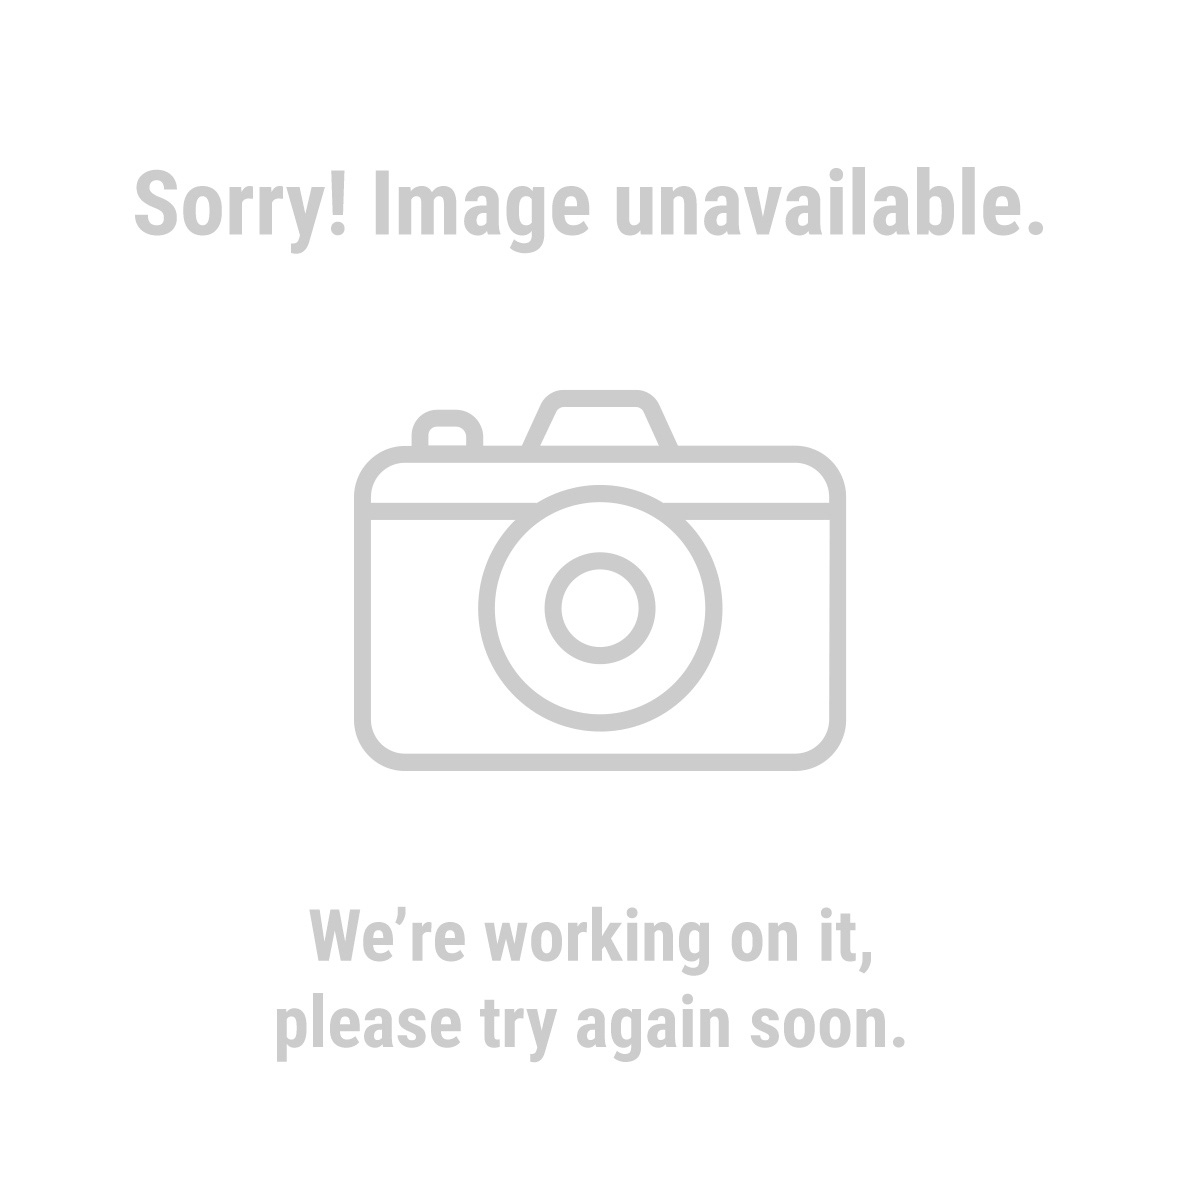 Pittsburgh Automotive 92955 Tire Gauge with Flex Hose